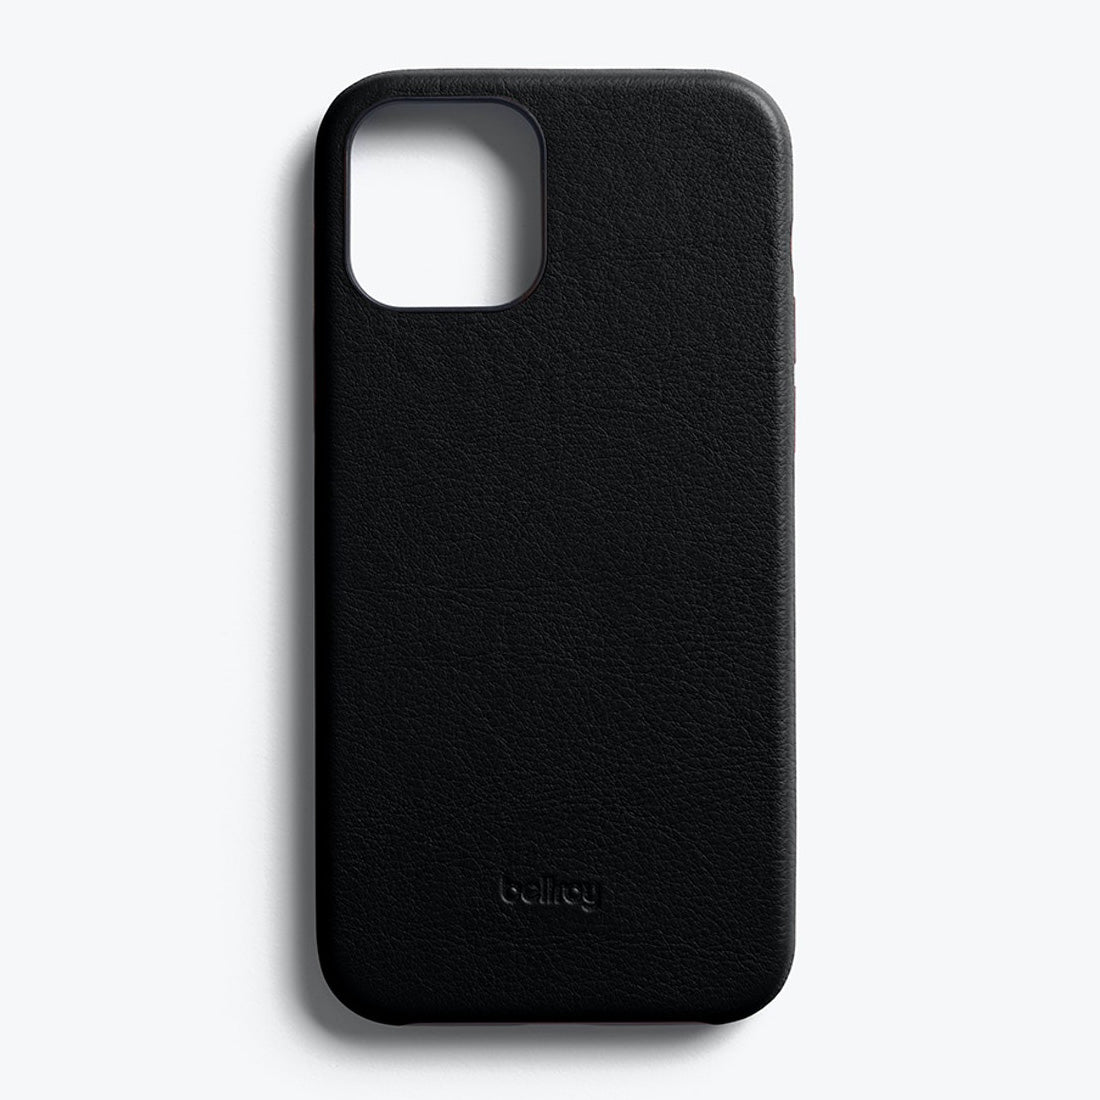 Bellroy Slim Genuine Leather Case For iPhone iPhone 12 Pro Max - BLACK